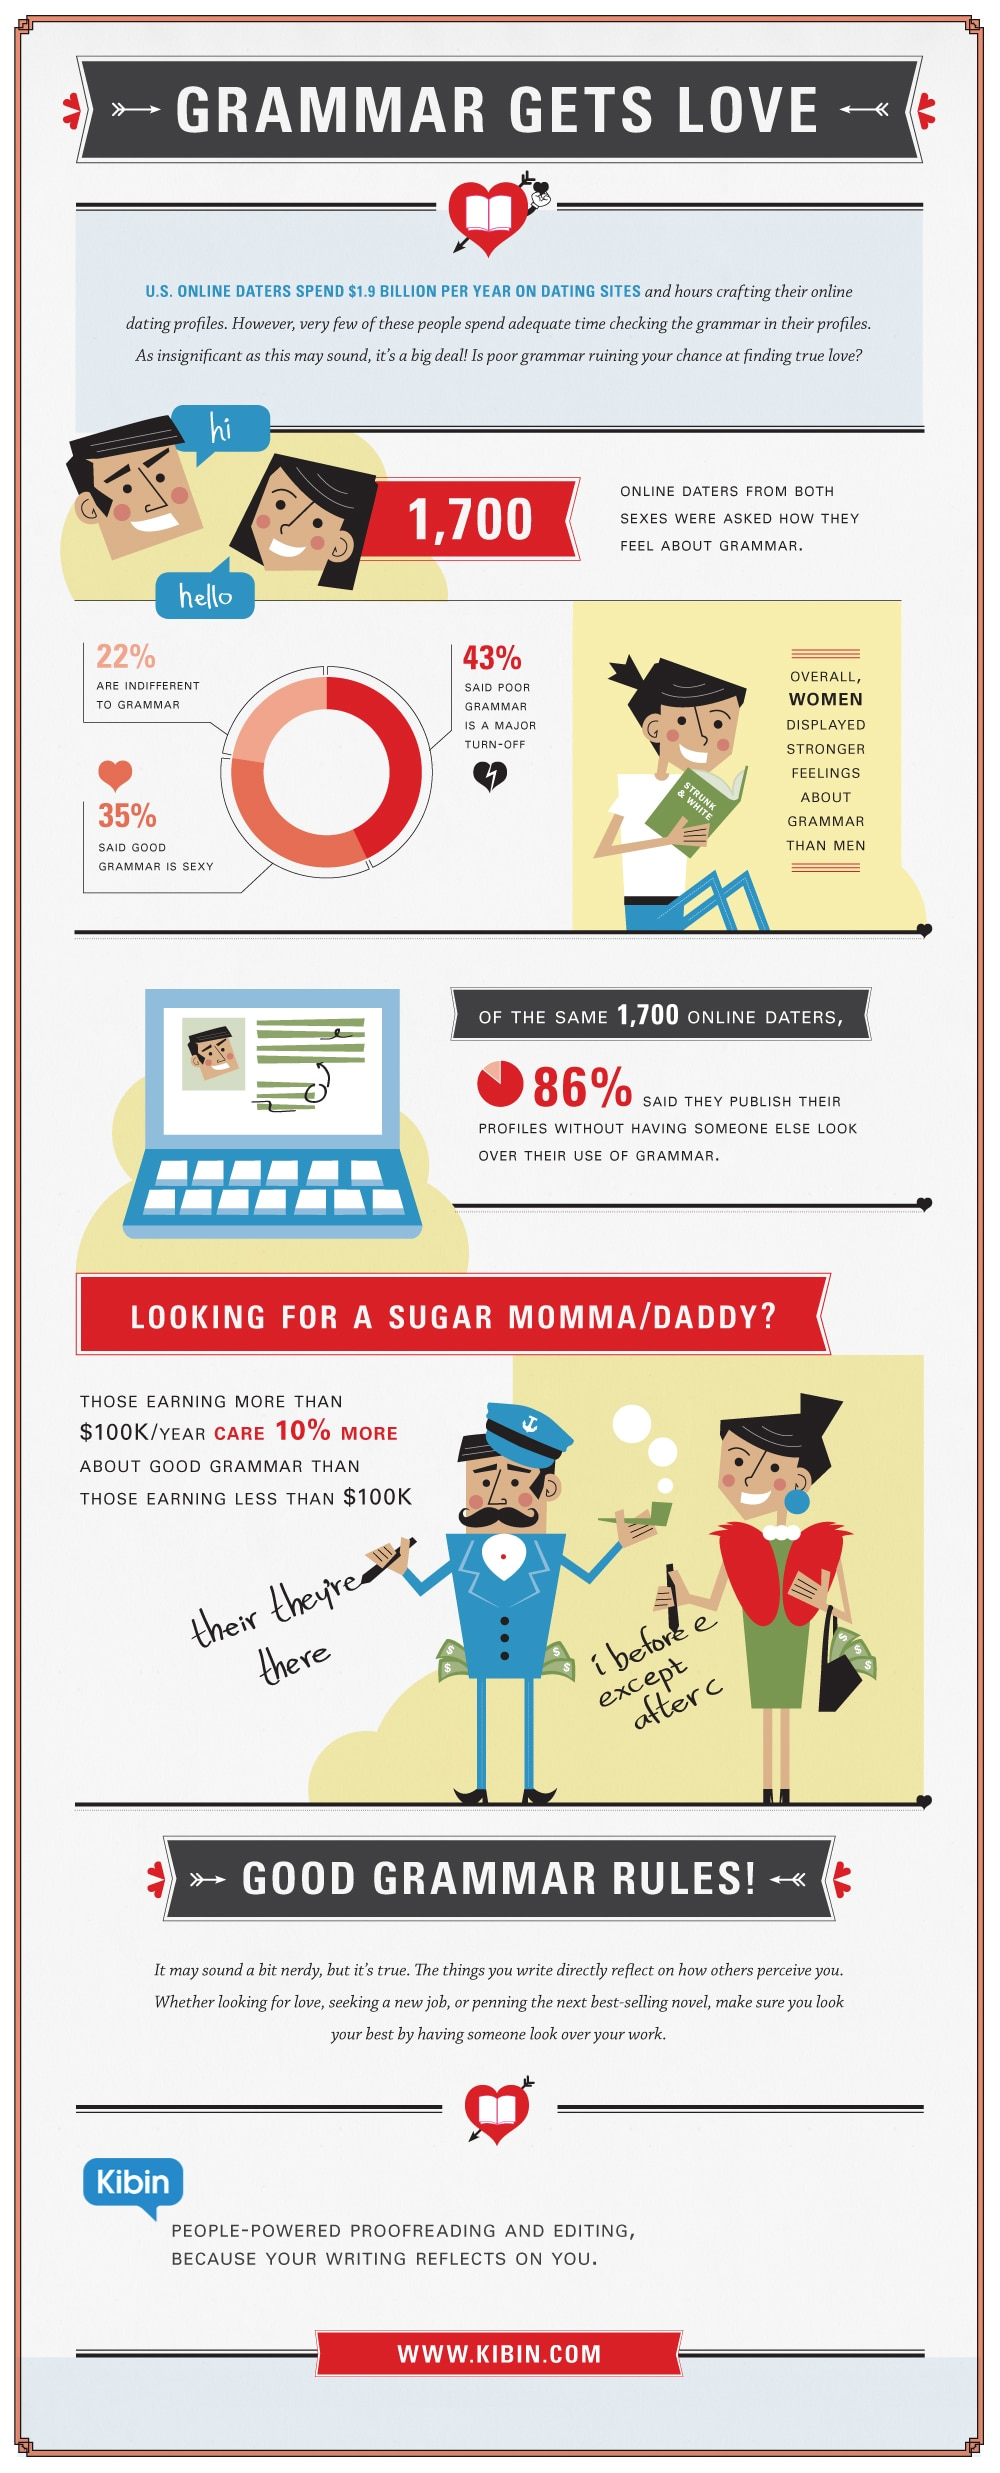 How Using Good Grammar Online Can Help You Find Love [Infographic]